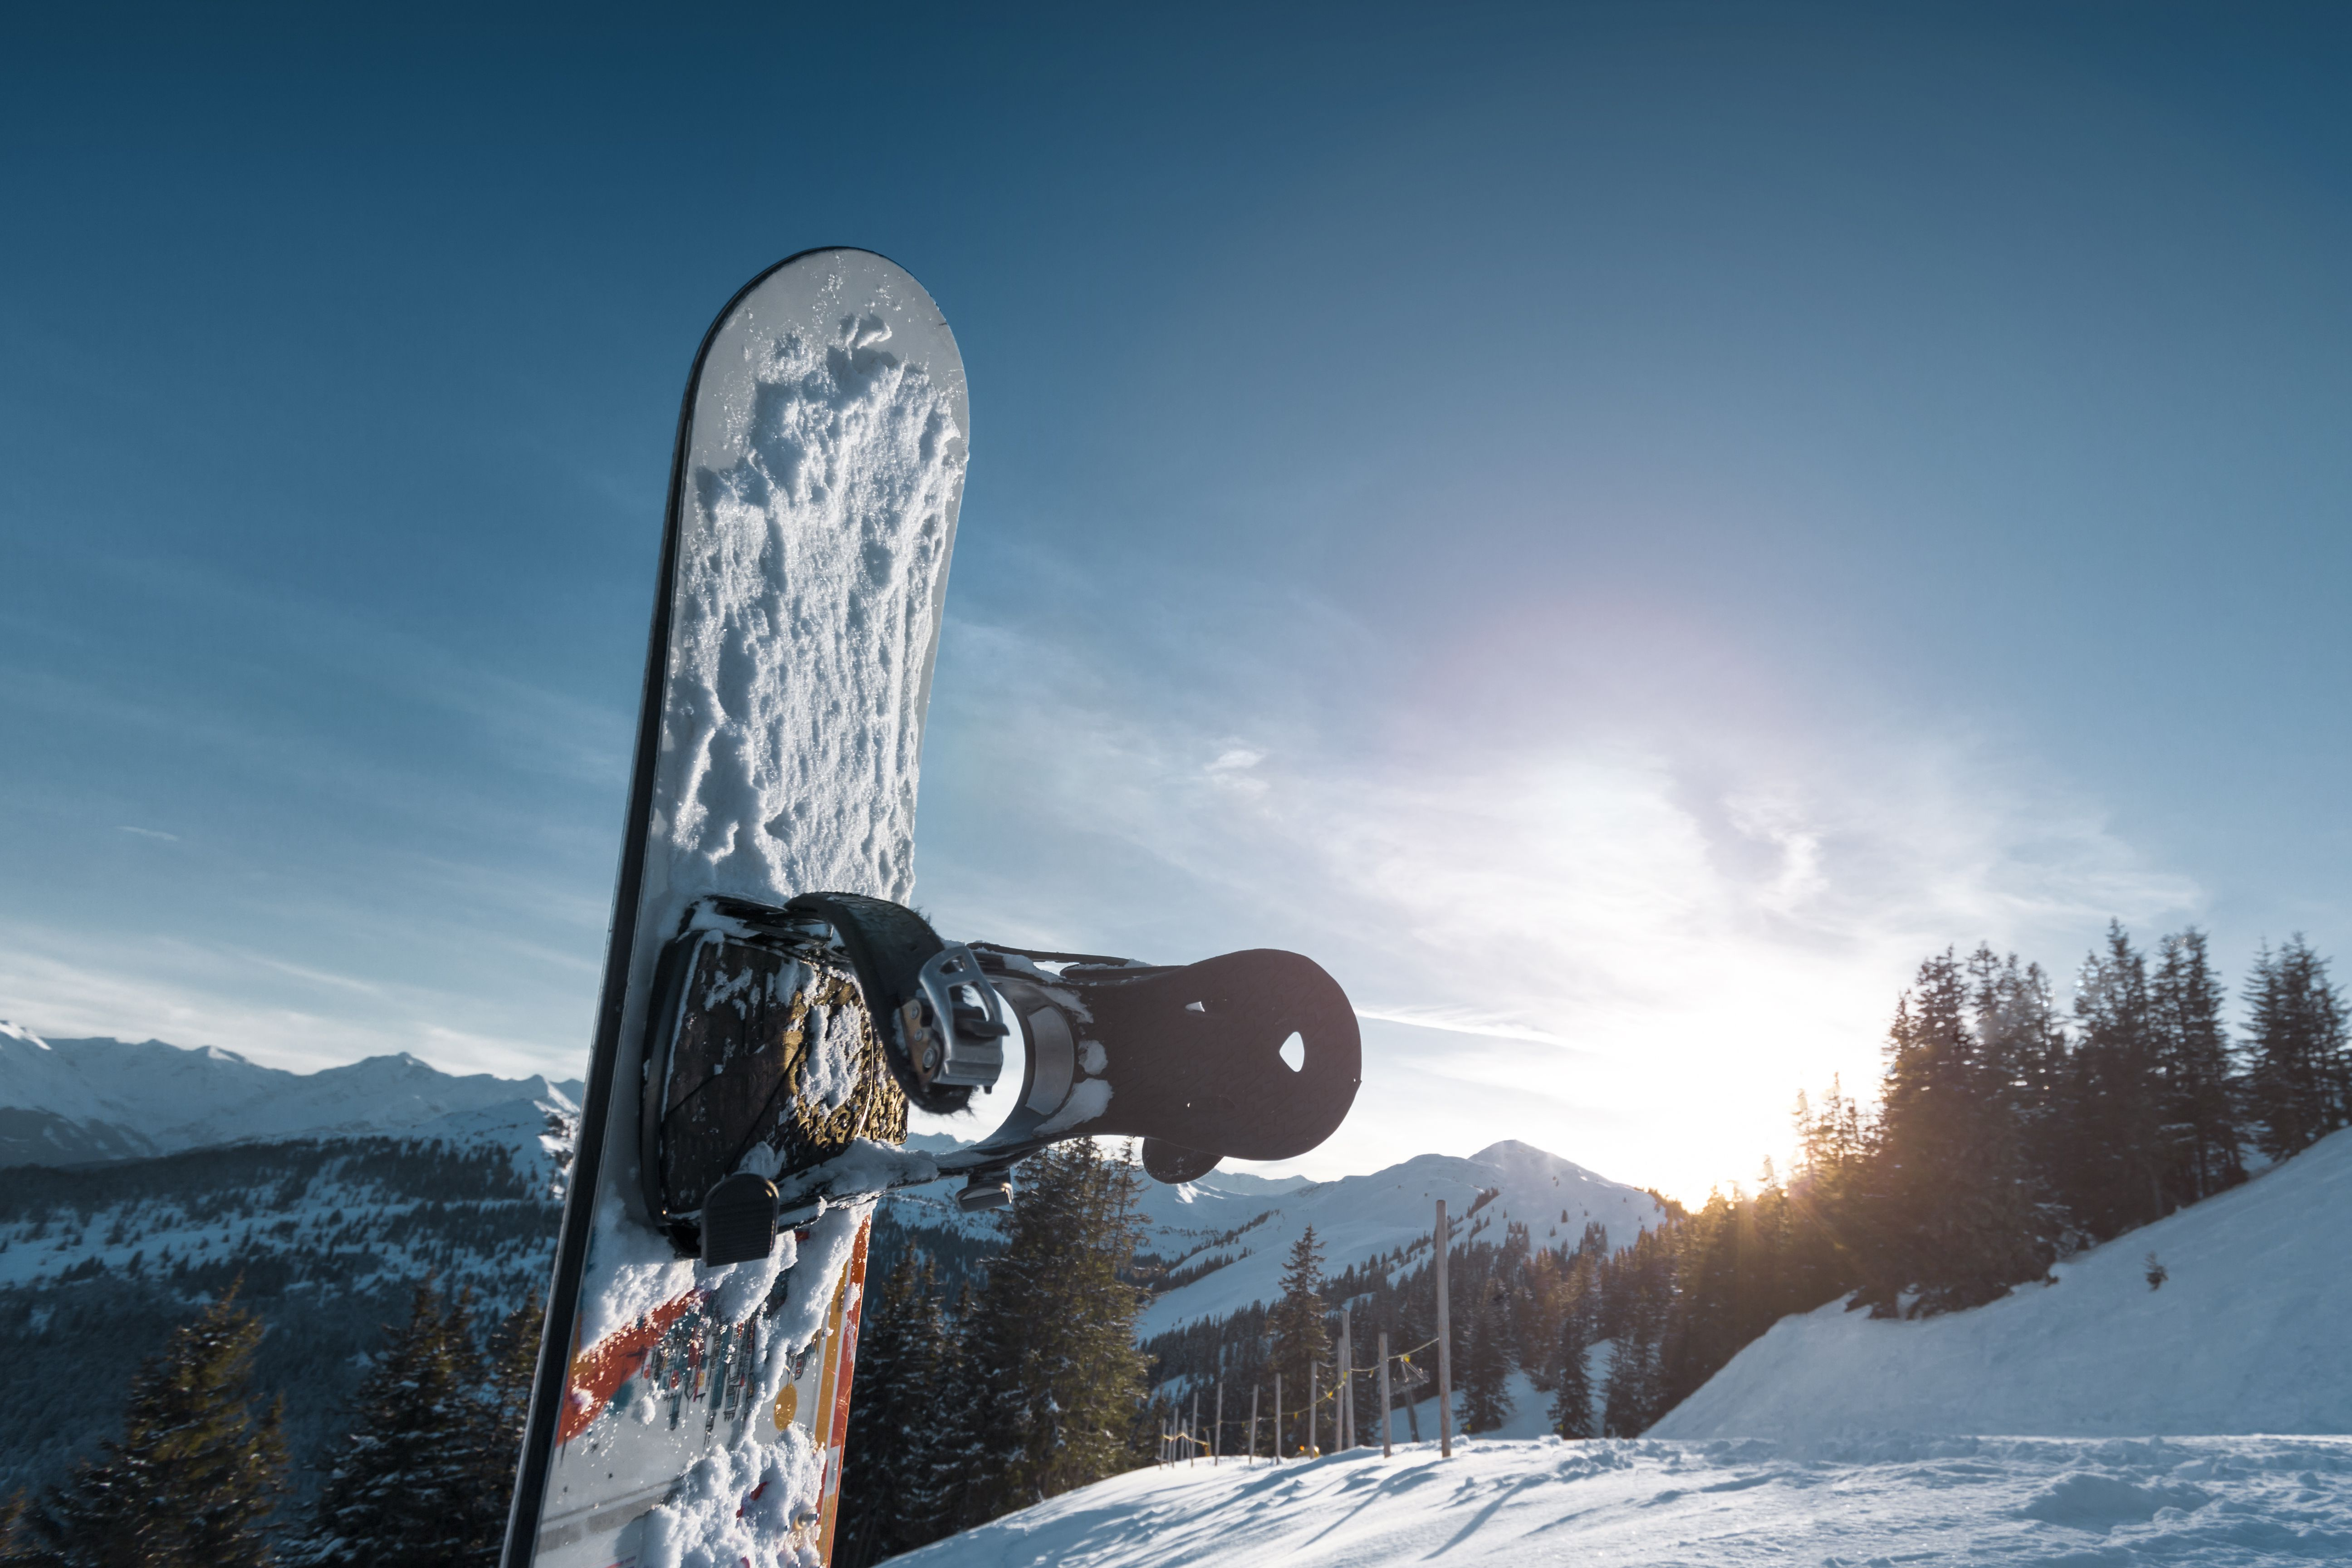 How to Get Tons of Free Snowboard Stickers